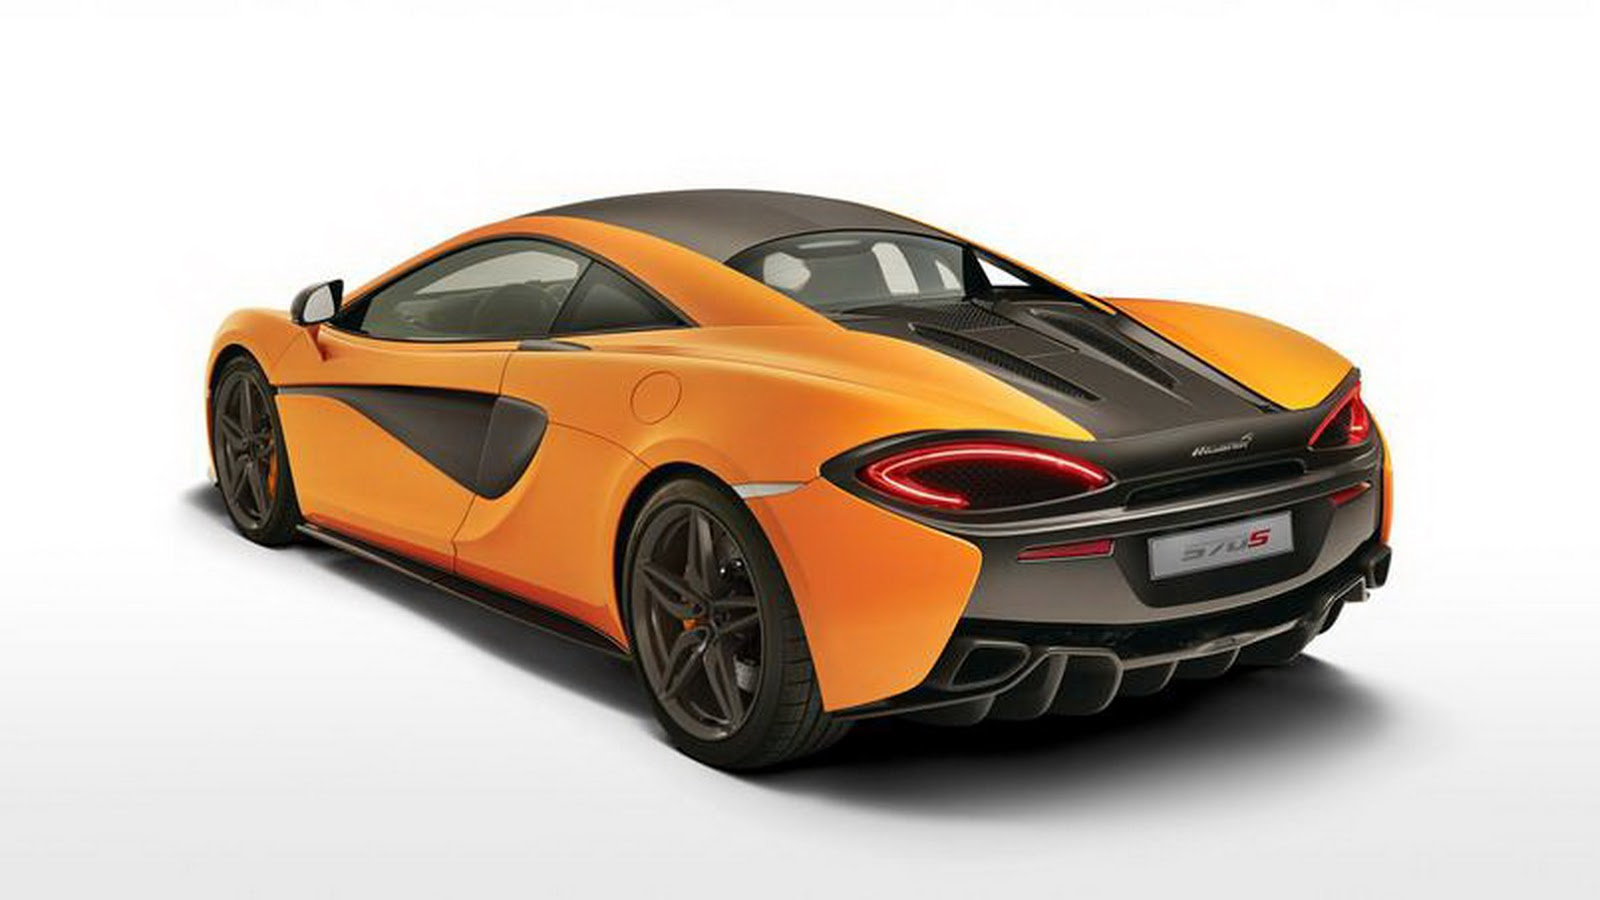 mclaren-570s-official-photo-2.jpg (1600×900)